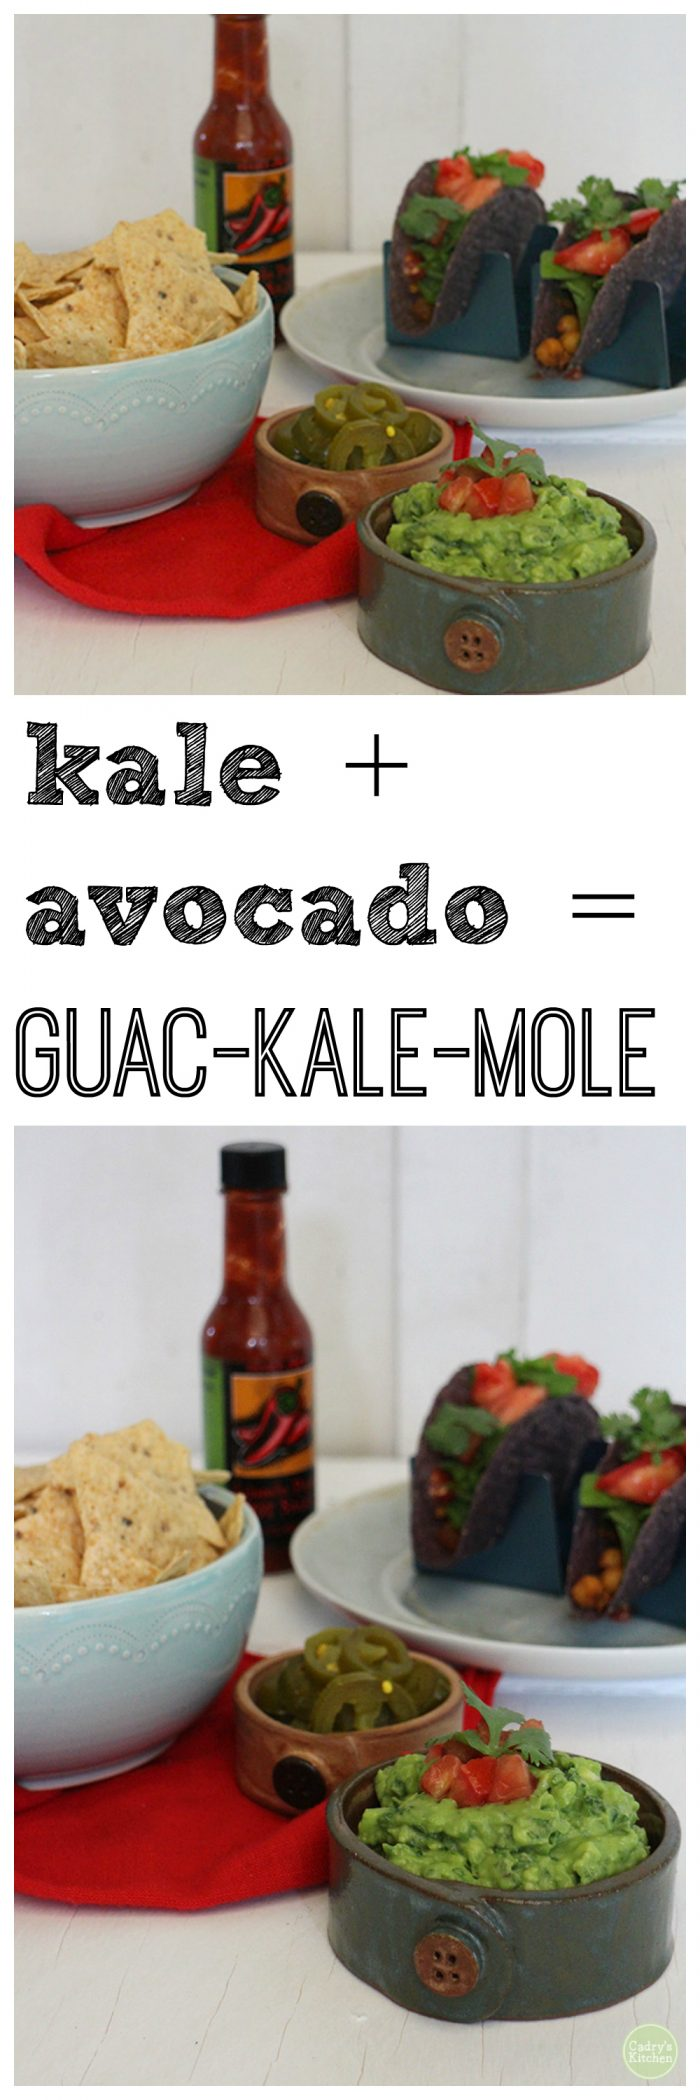 If you're a kale fan like I am, you're sure to love this twist on guacamole. The kale in this kale guacamole blends into the flavors beautifully without dominating. It just adds a little somethin'-somethin' in taste and bite. #dip #appetizer #avocado #kale #vegan #vegetarian #mexican